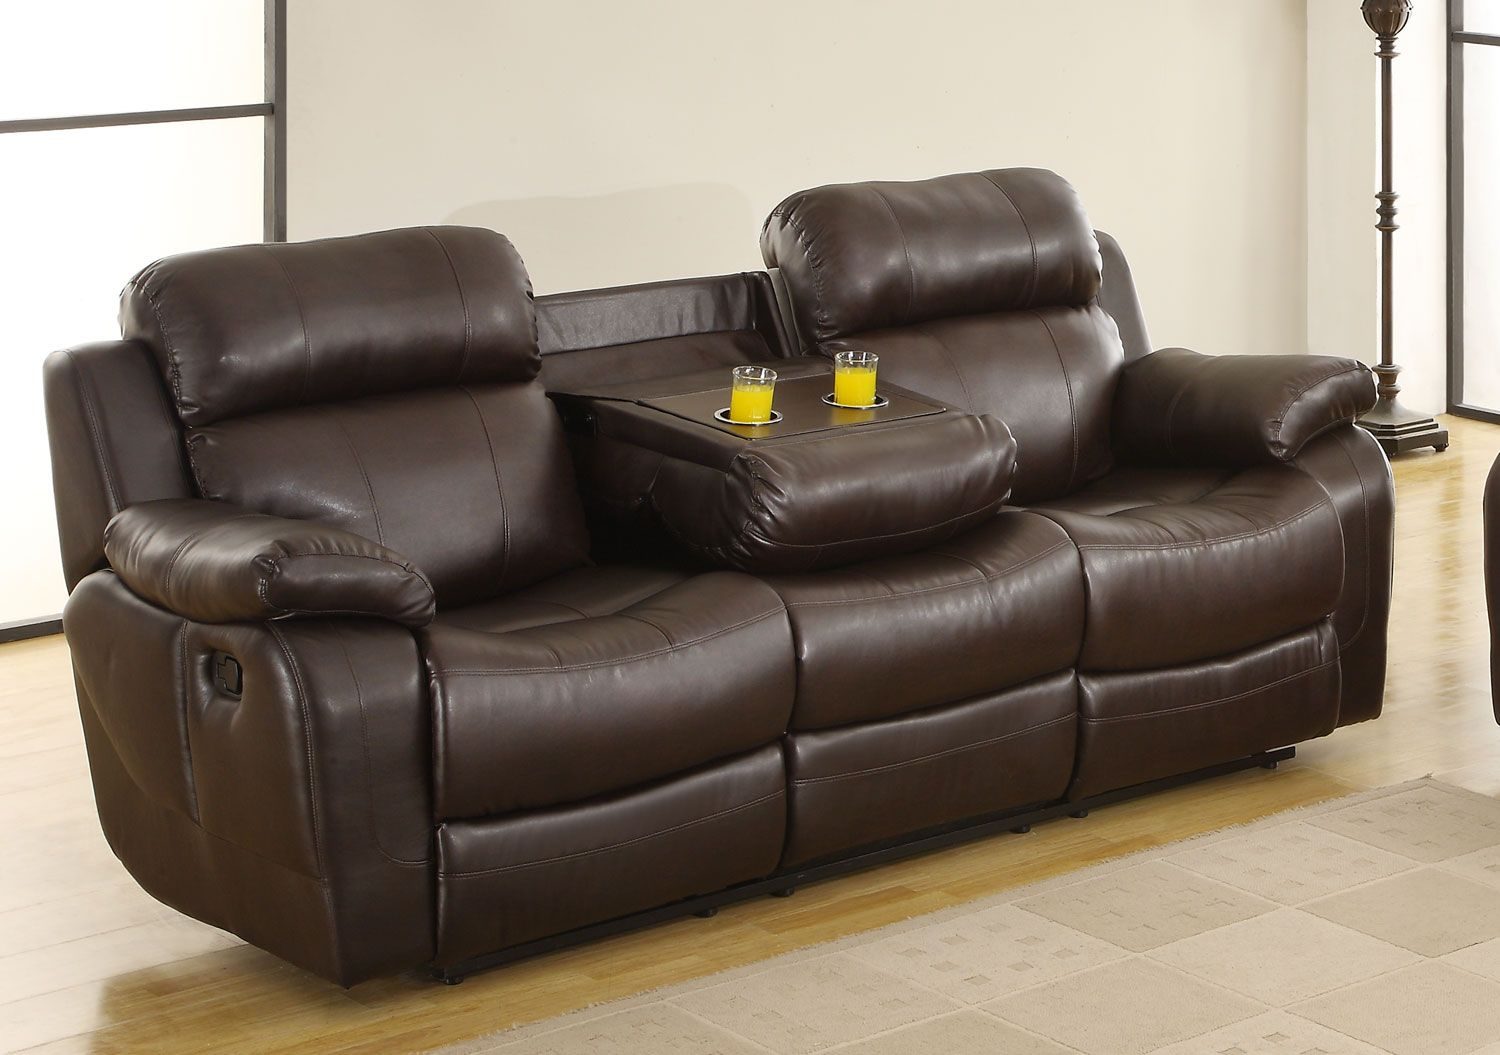 Homelegance Marille Sofa Recliner With Drop Cup Holder Dark